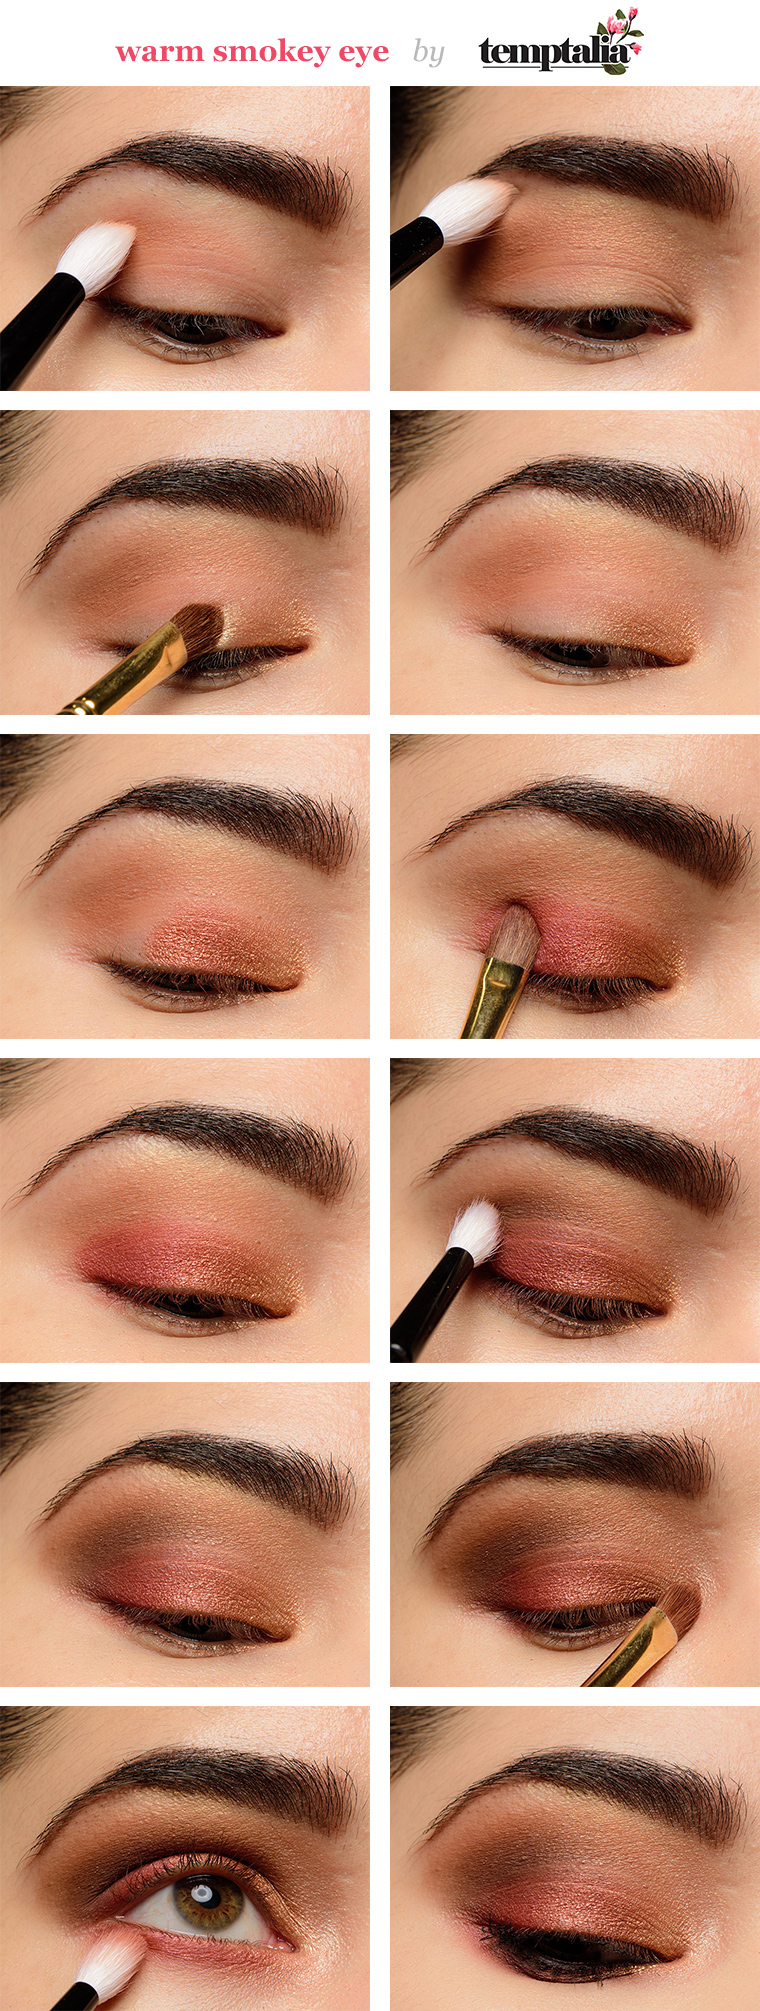 Smokey Eyeshadow Tutorial: How To Apply Eyeshadow: Smokey Eye Makeup Tutorial For